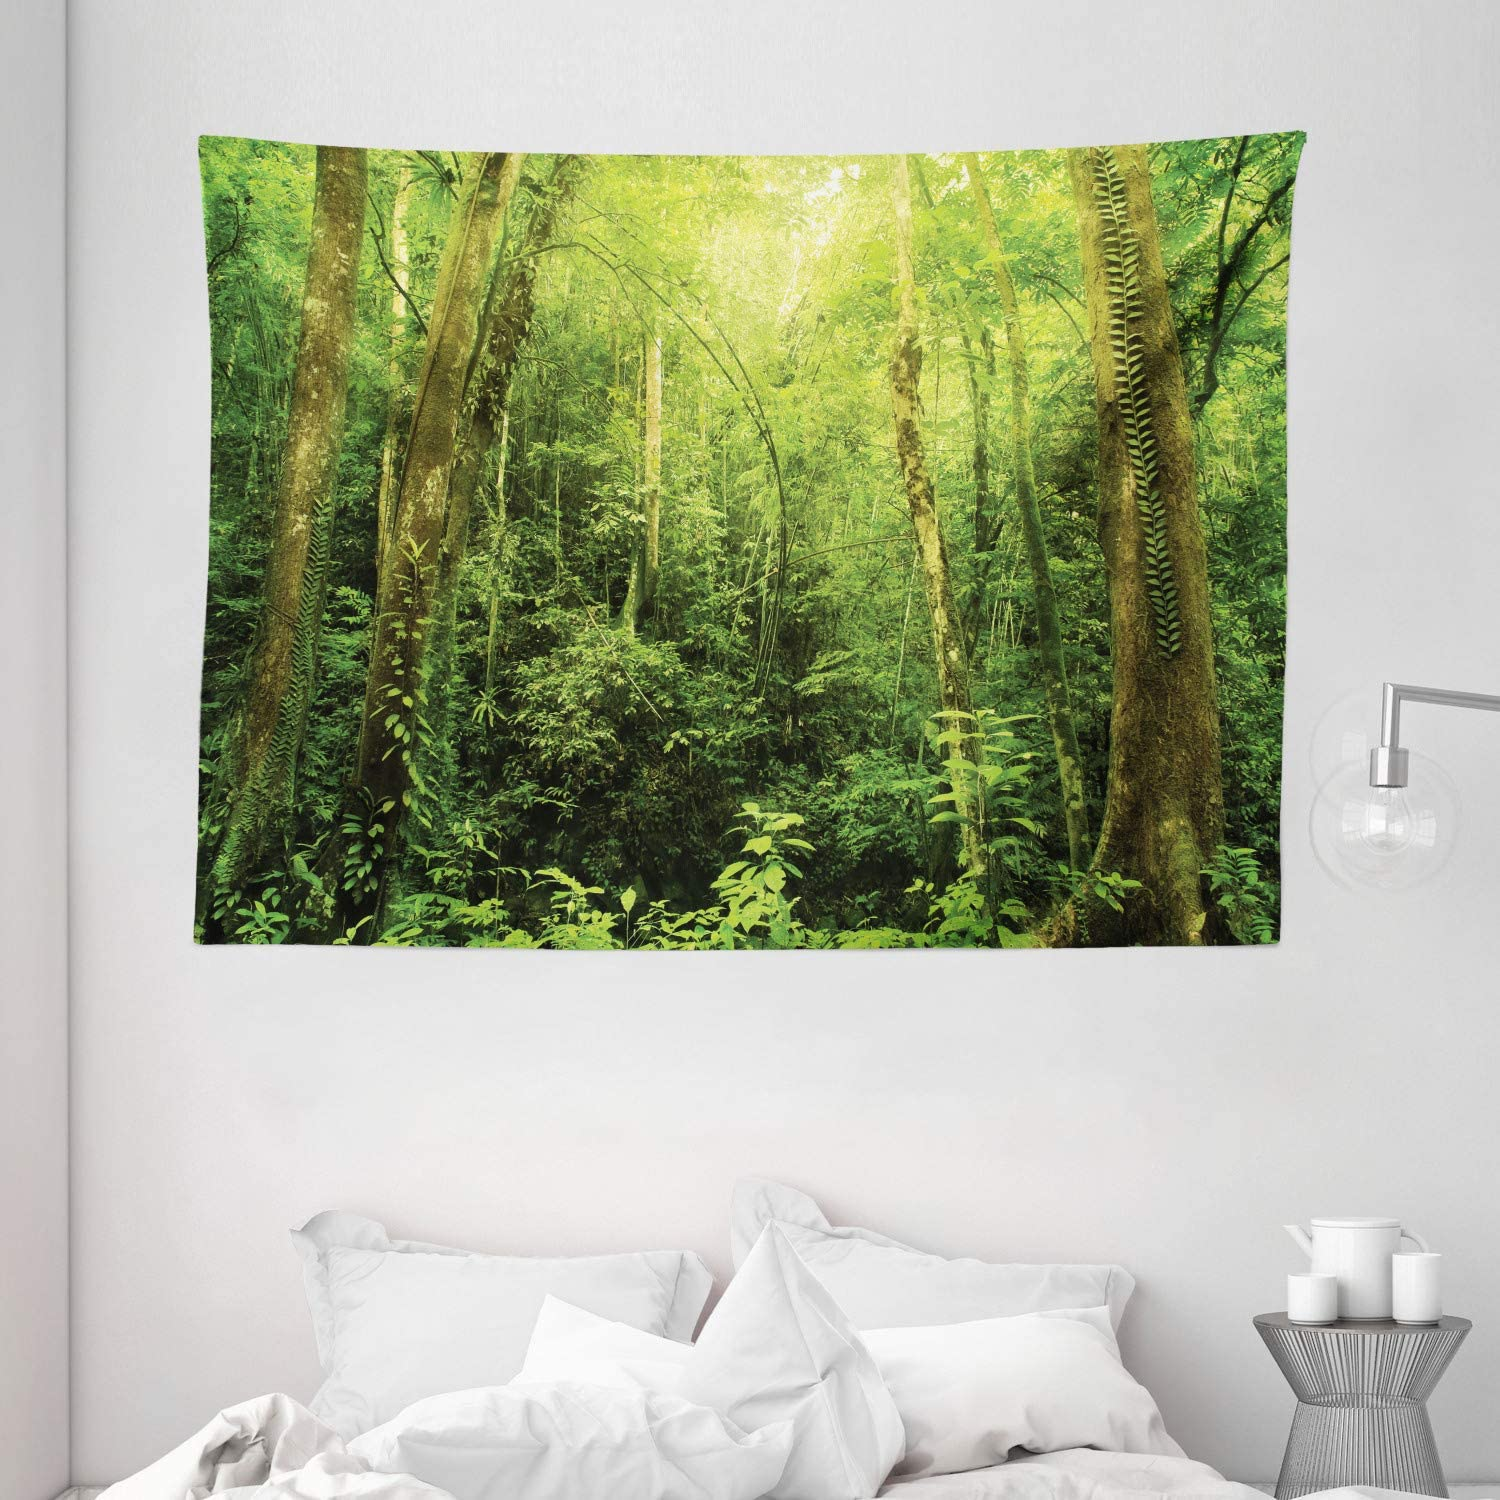 "Ambesonne Rainforest Tapestry, Tropical Rainforest Landscape Malaysia Asia Green Tree Trunks Uncultivated Wood Print, Wide Wall Hanging for Bedroom Living Room Dorm, 80"" X 60"", Green Yellow"